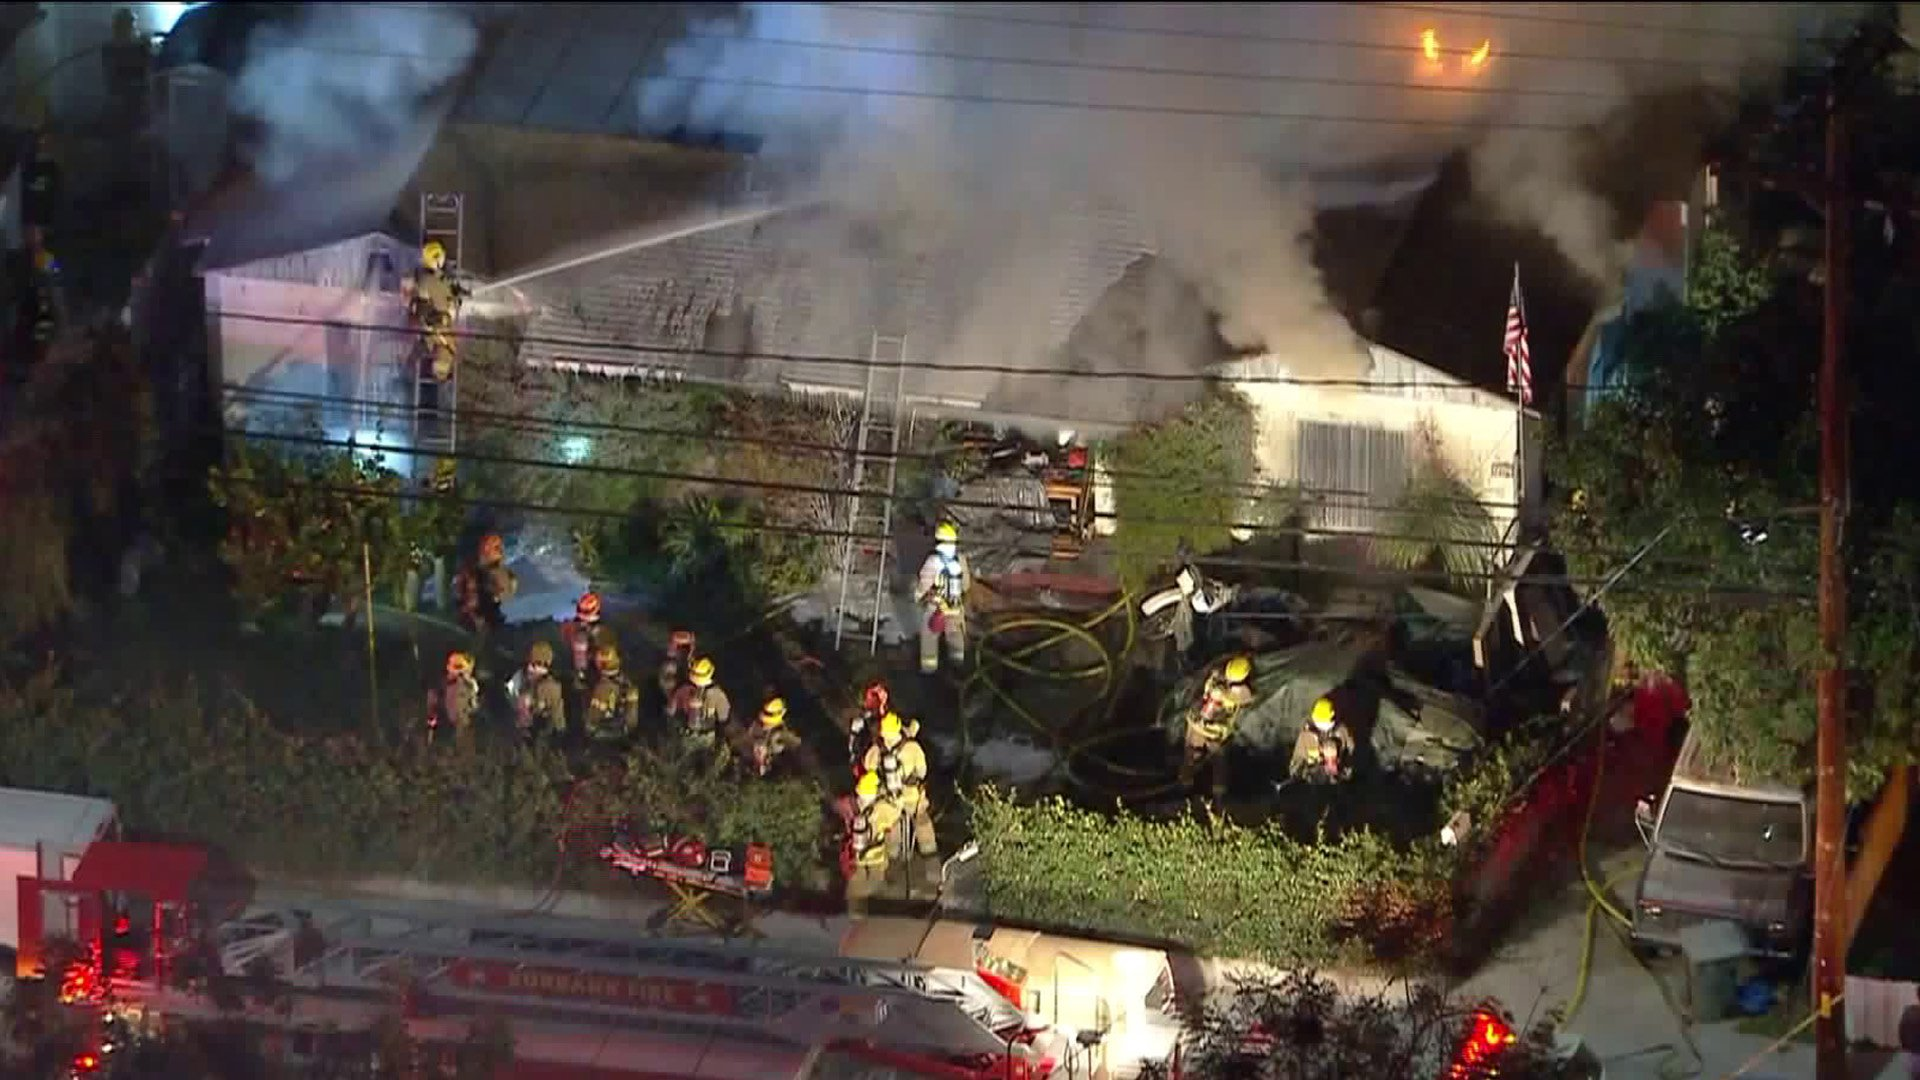 Sky5 footage shows firefighters putting out a fire at a home located at 1204 South Lake St. in Burbank on Feb. 13, 2020. (Credit: KTLA)